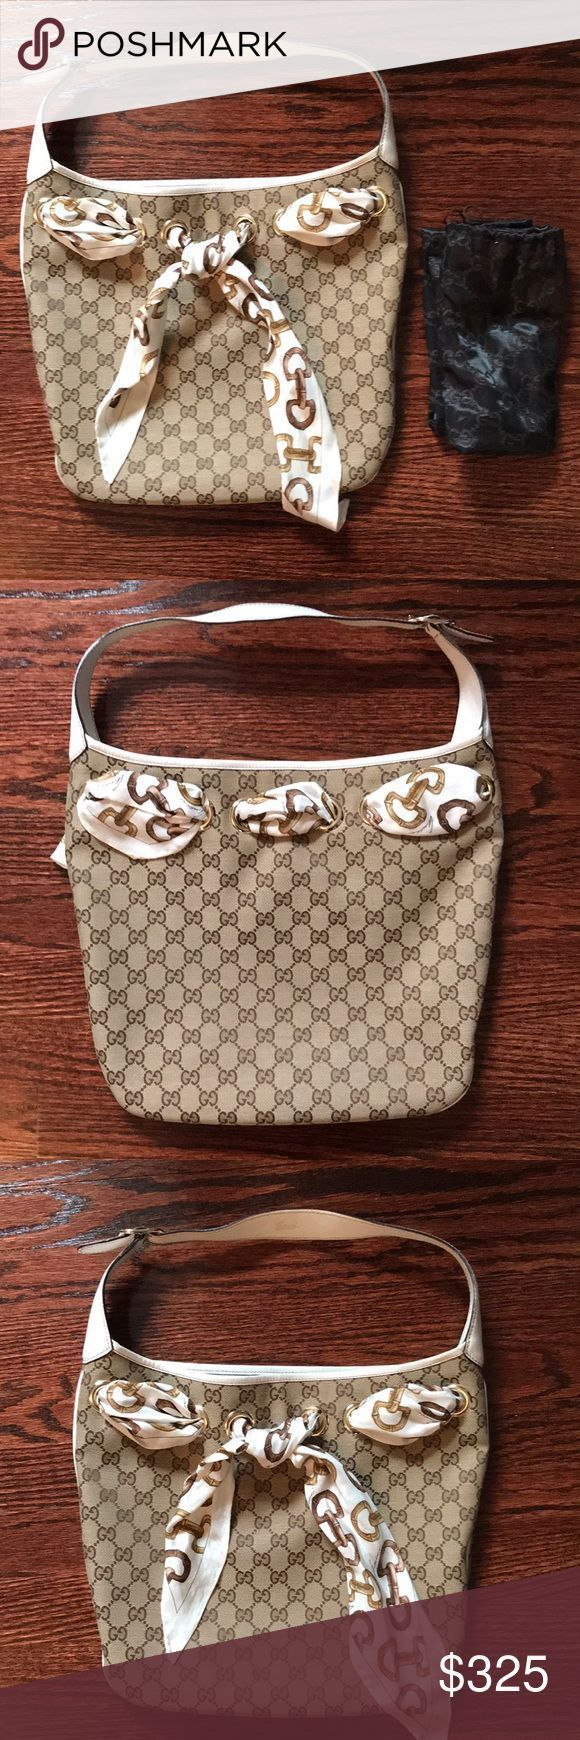 Monogrammed White Leather Bag Bamboo Scarf Authentic Gucci Monogrammed S Gucci Monogrammed White Leather Bag Bamboo Scarf Authentic Gucci Monogrammed S Gucci Monogrammed...